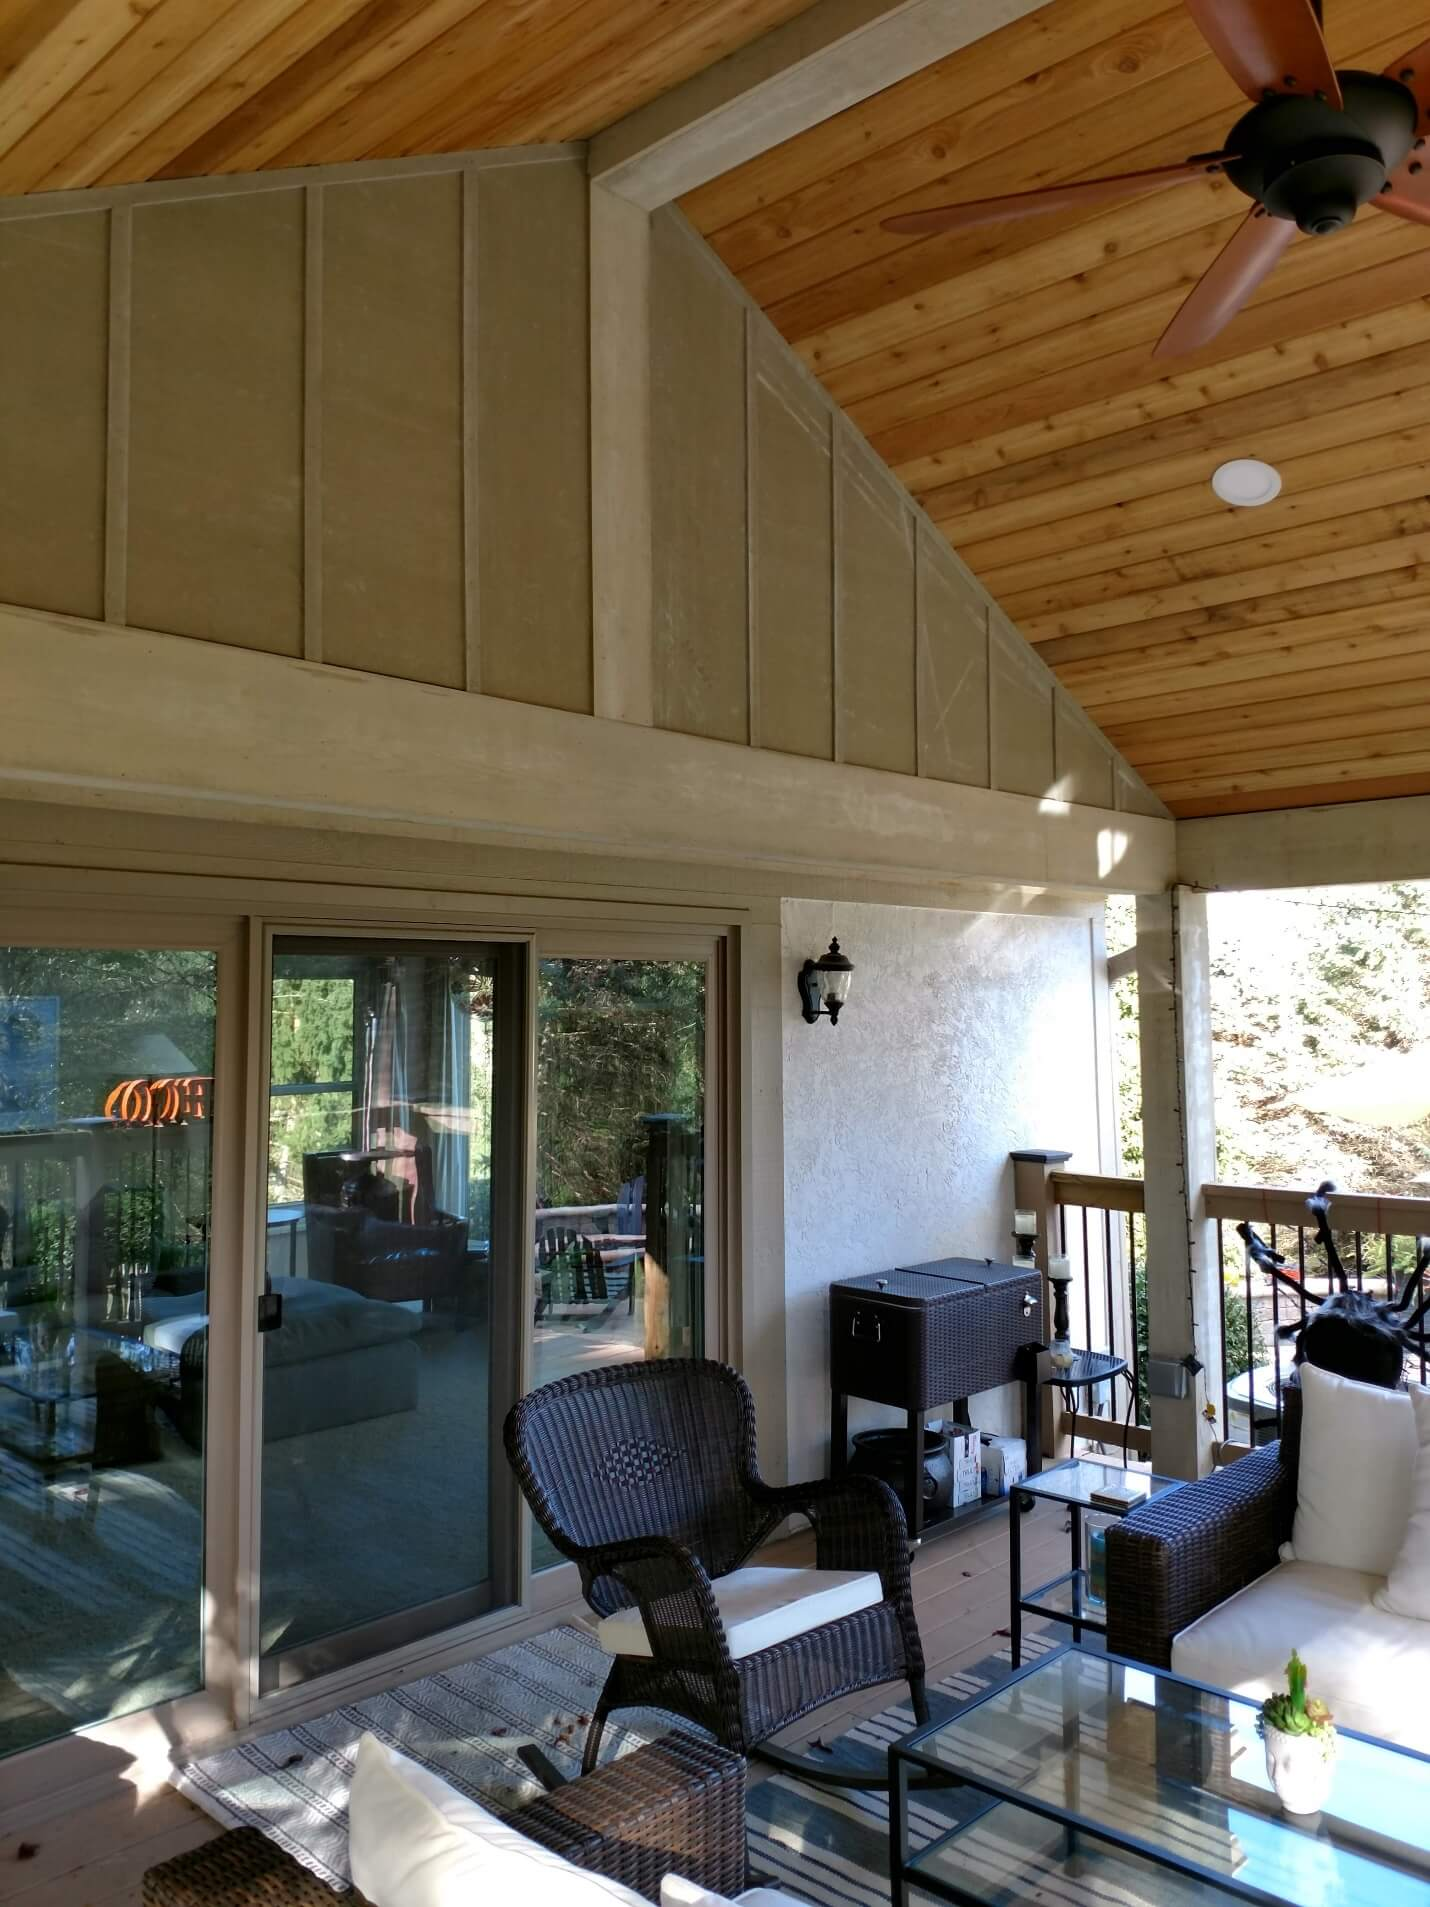 Covered porch seating area and sliding door